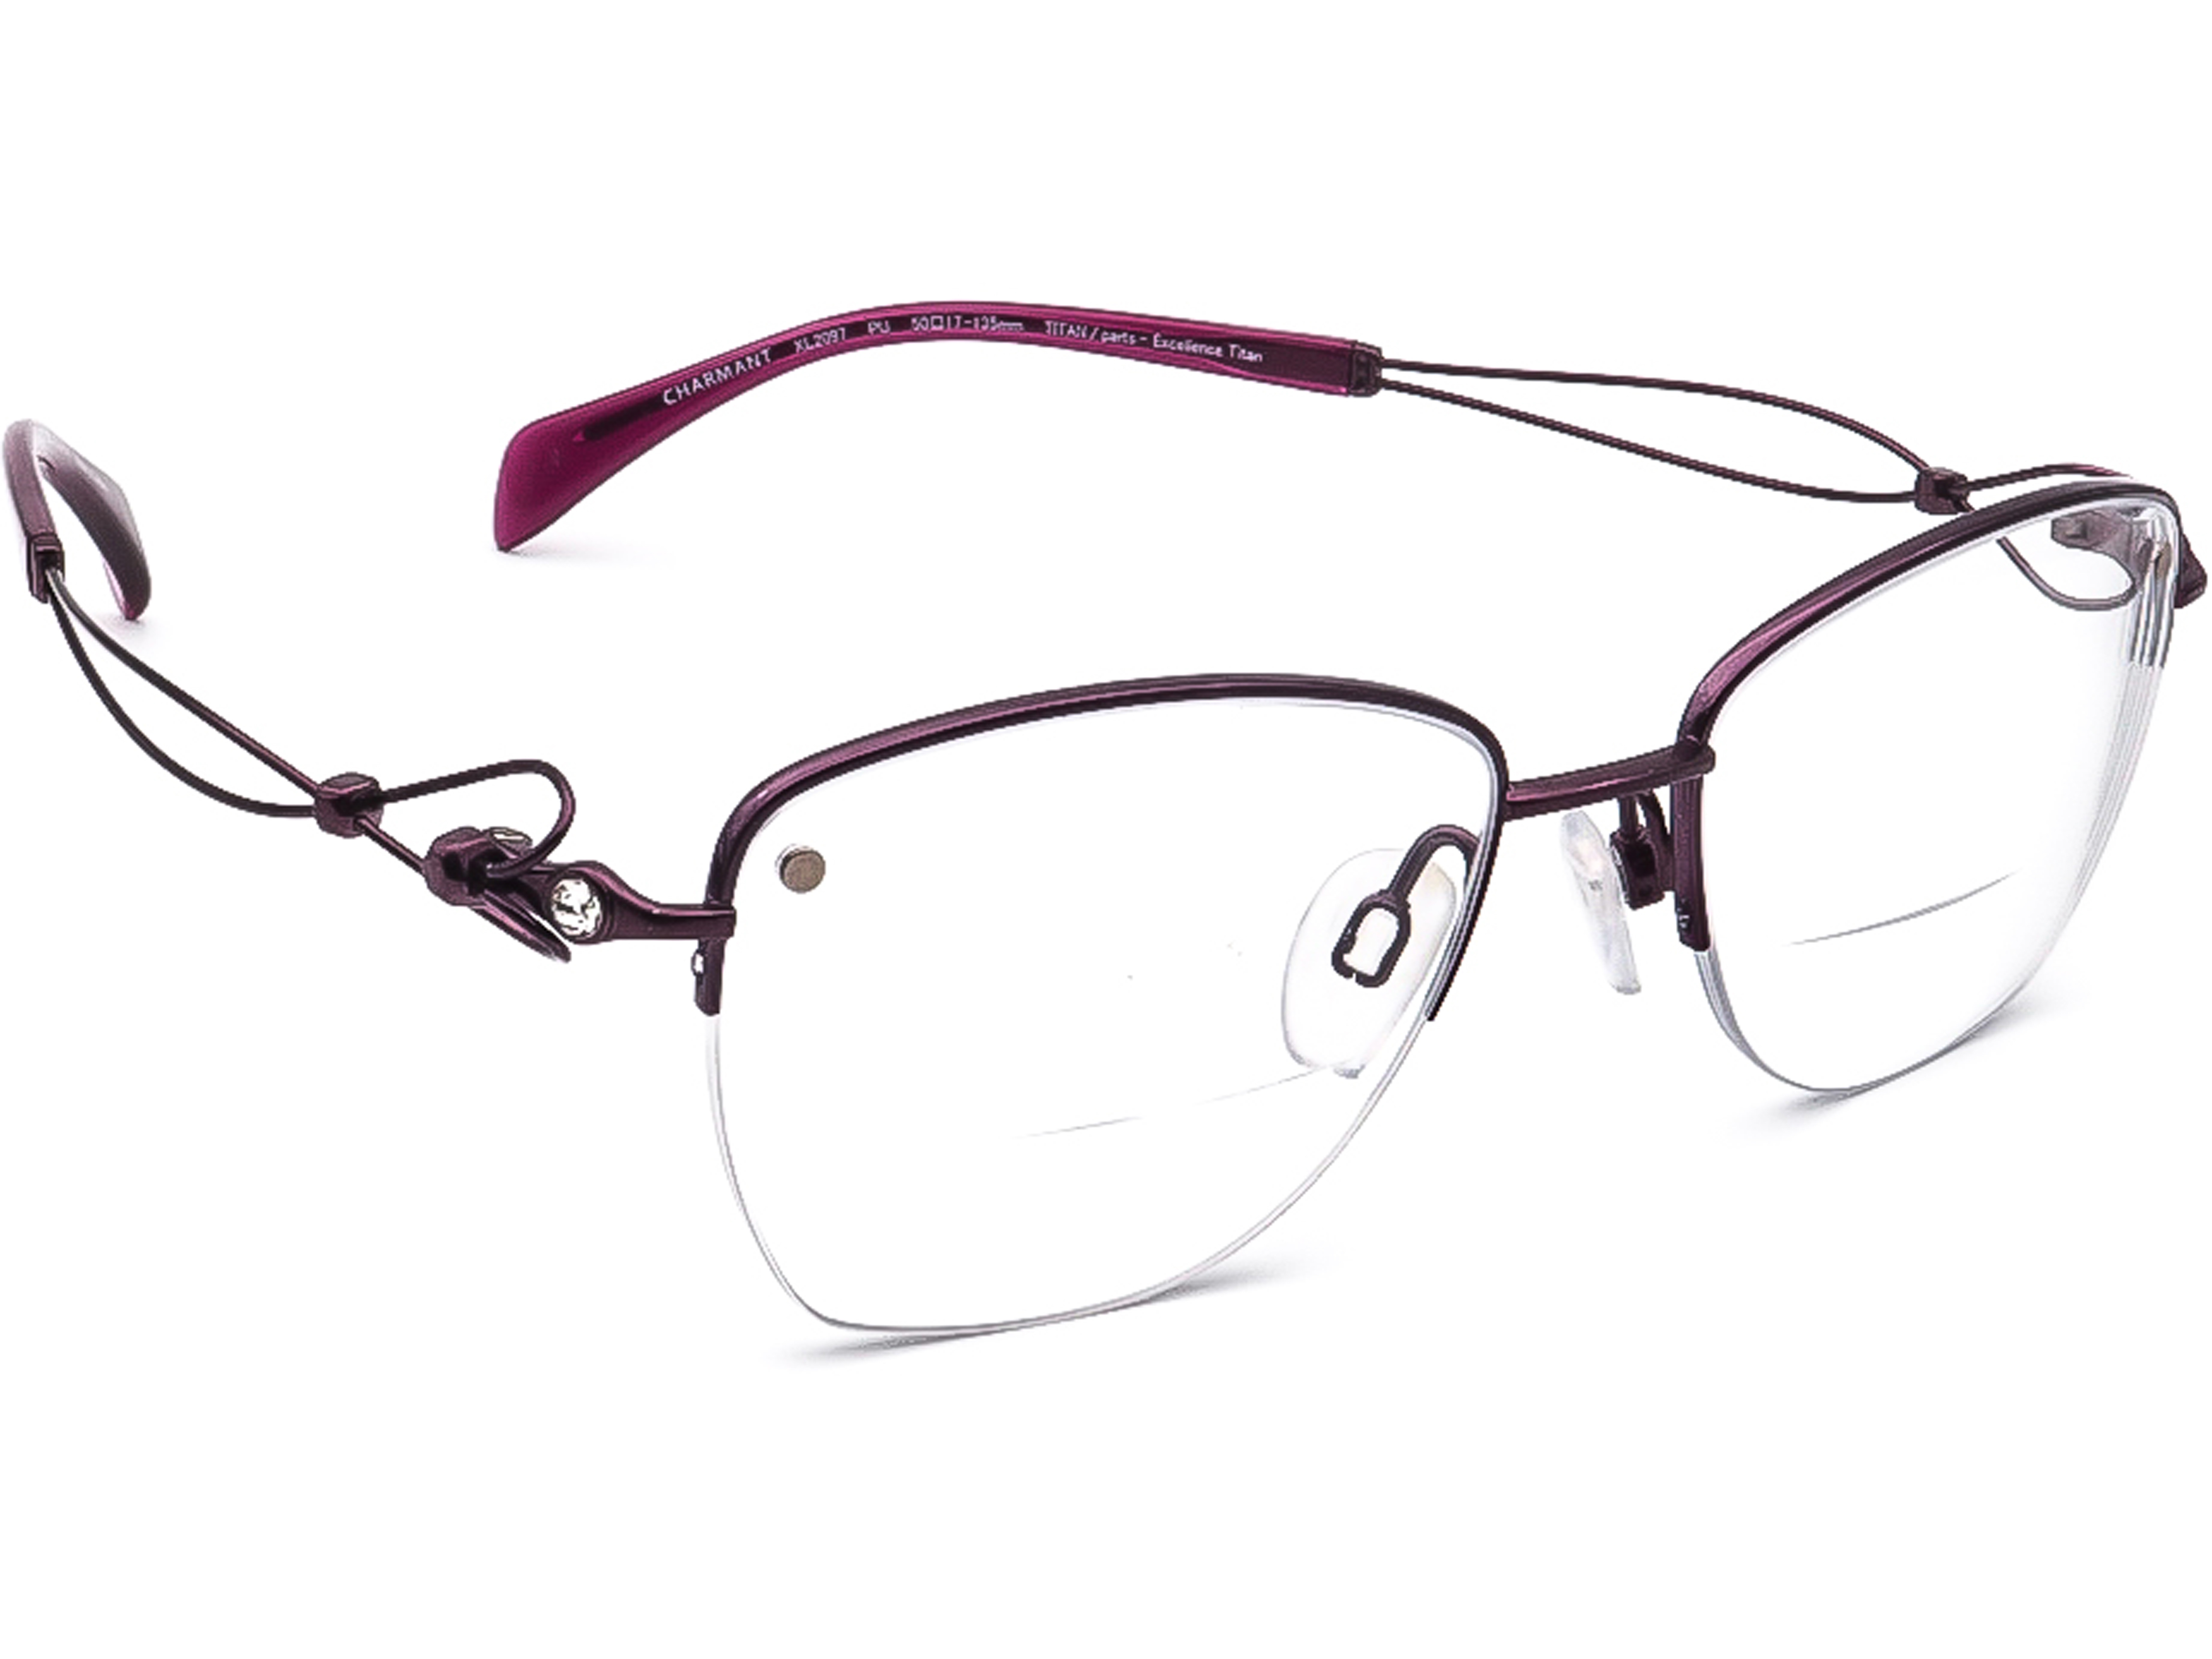 Charmant XL2097 PU Line Art Titan Eyeglasses